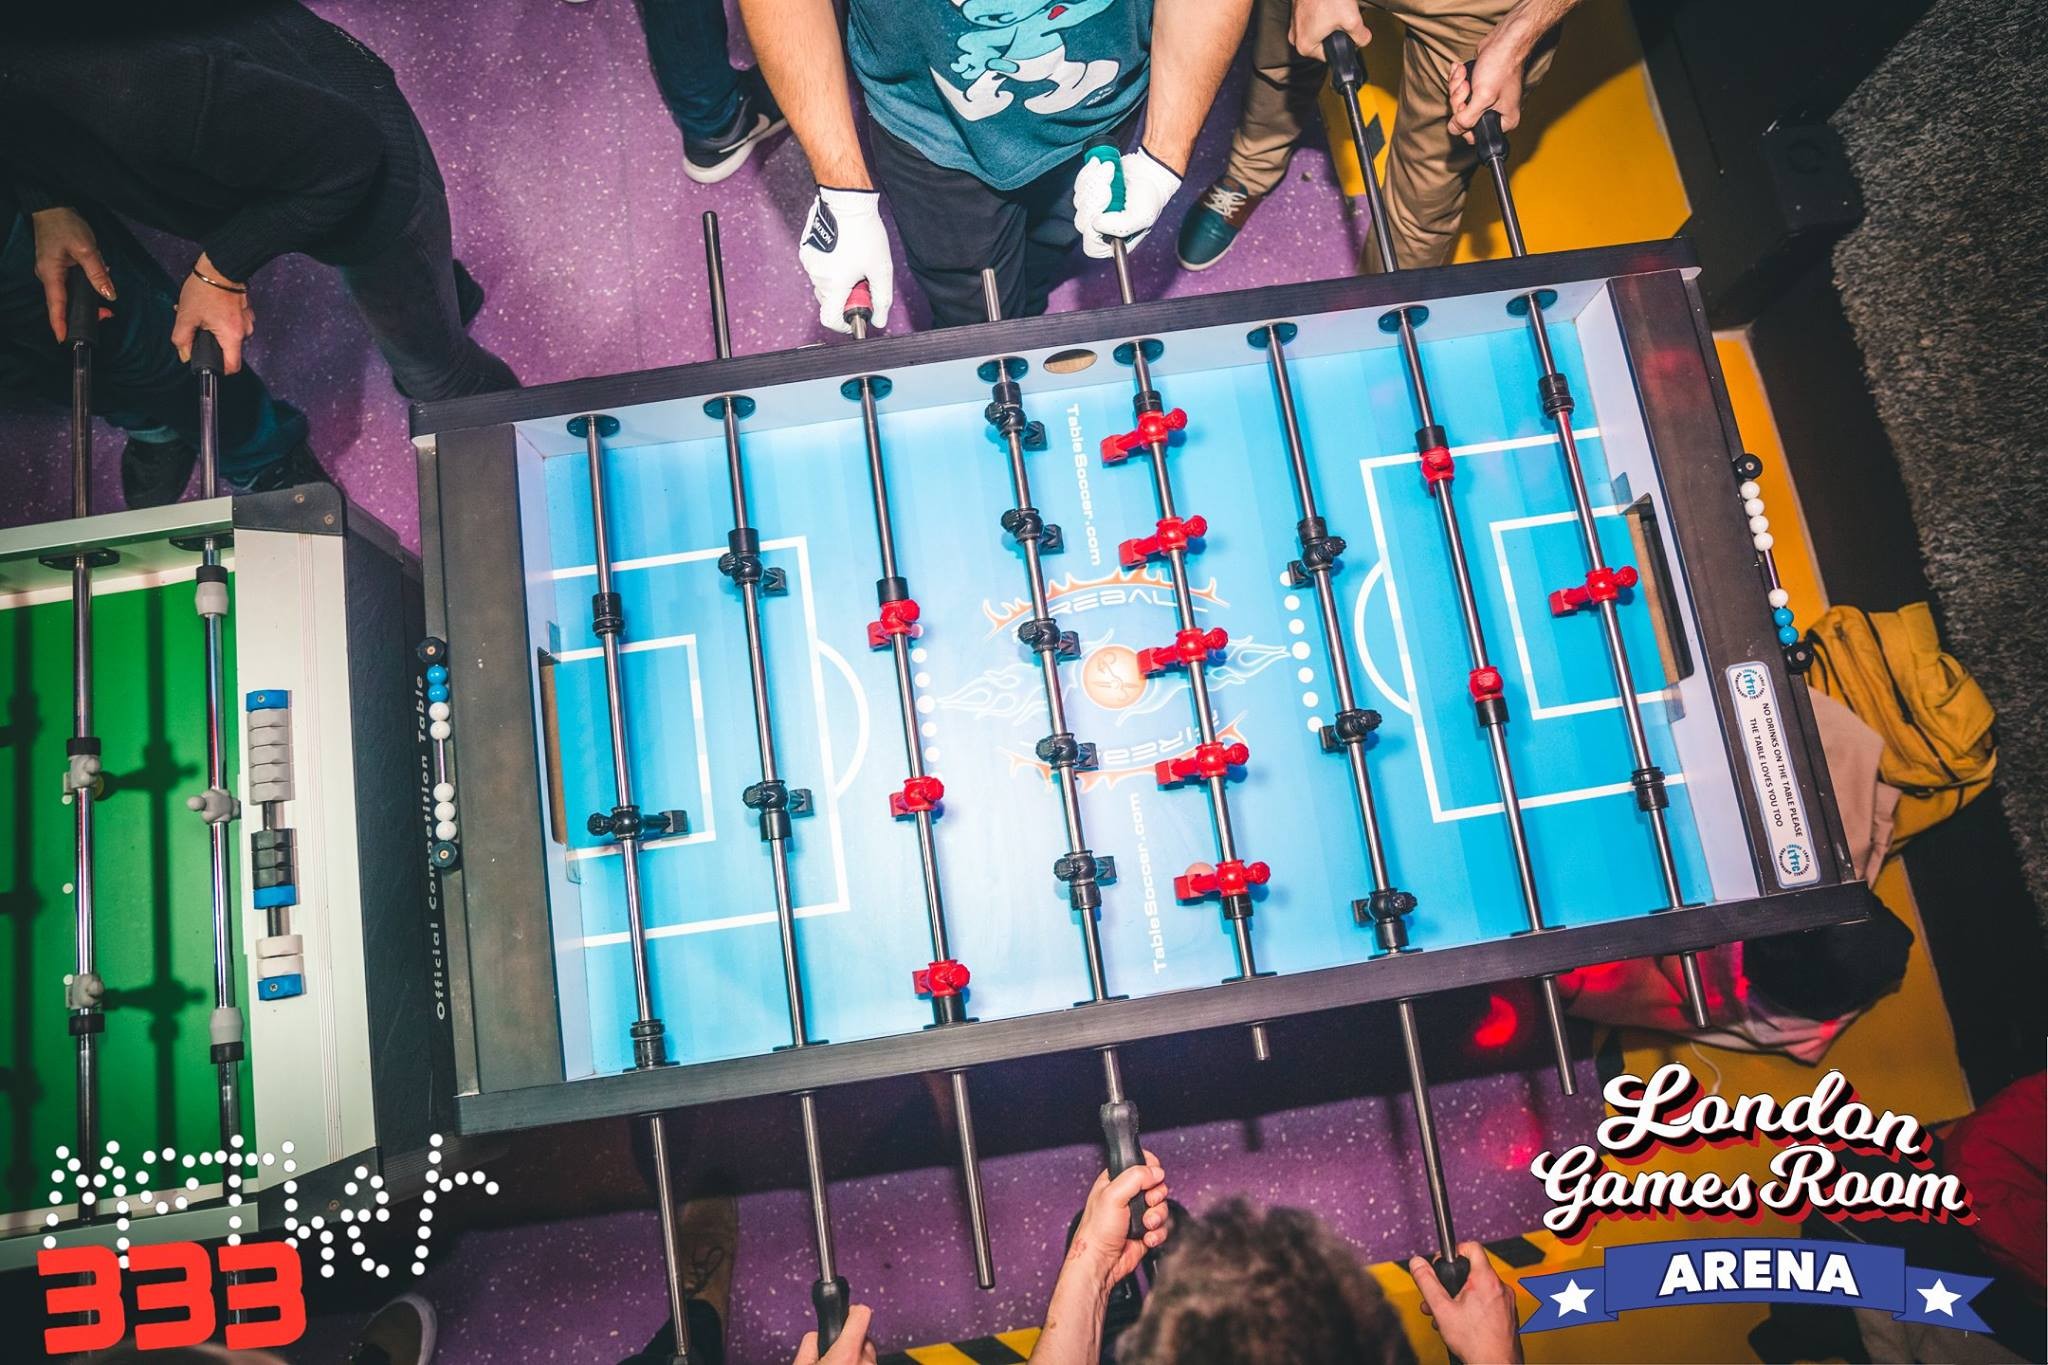 London Games Room - Monster D.Y.P Foosball Tournament